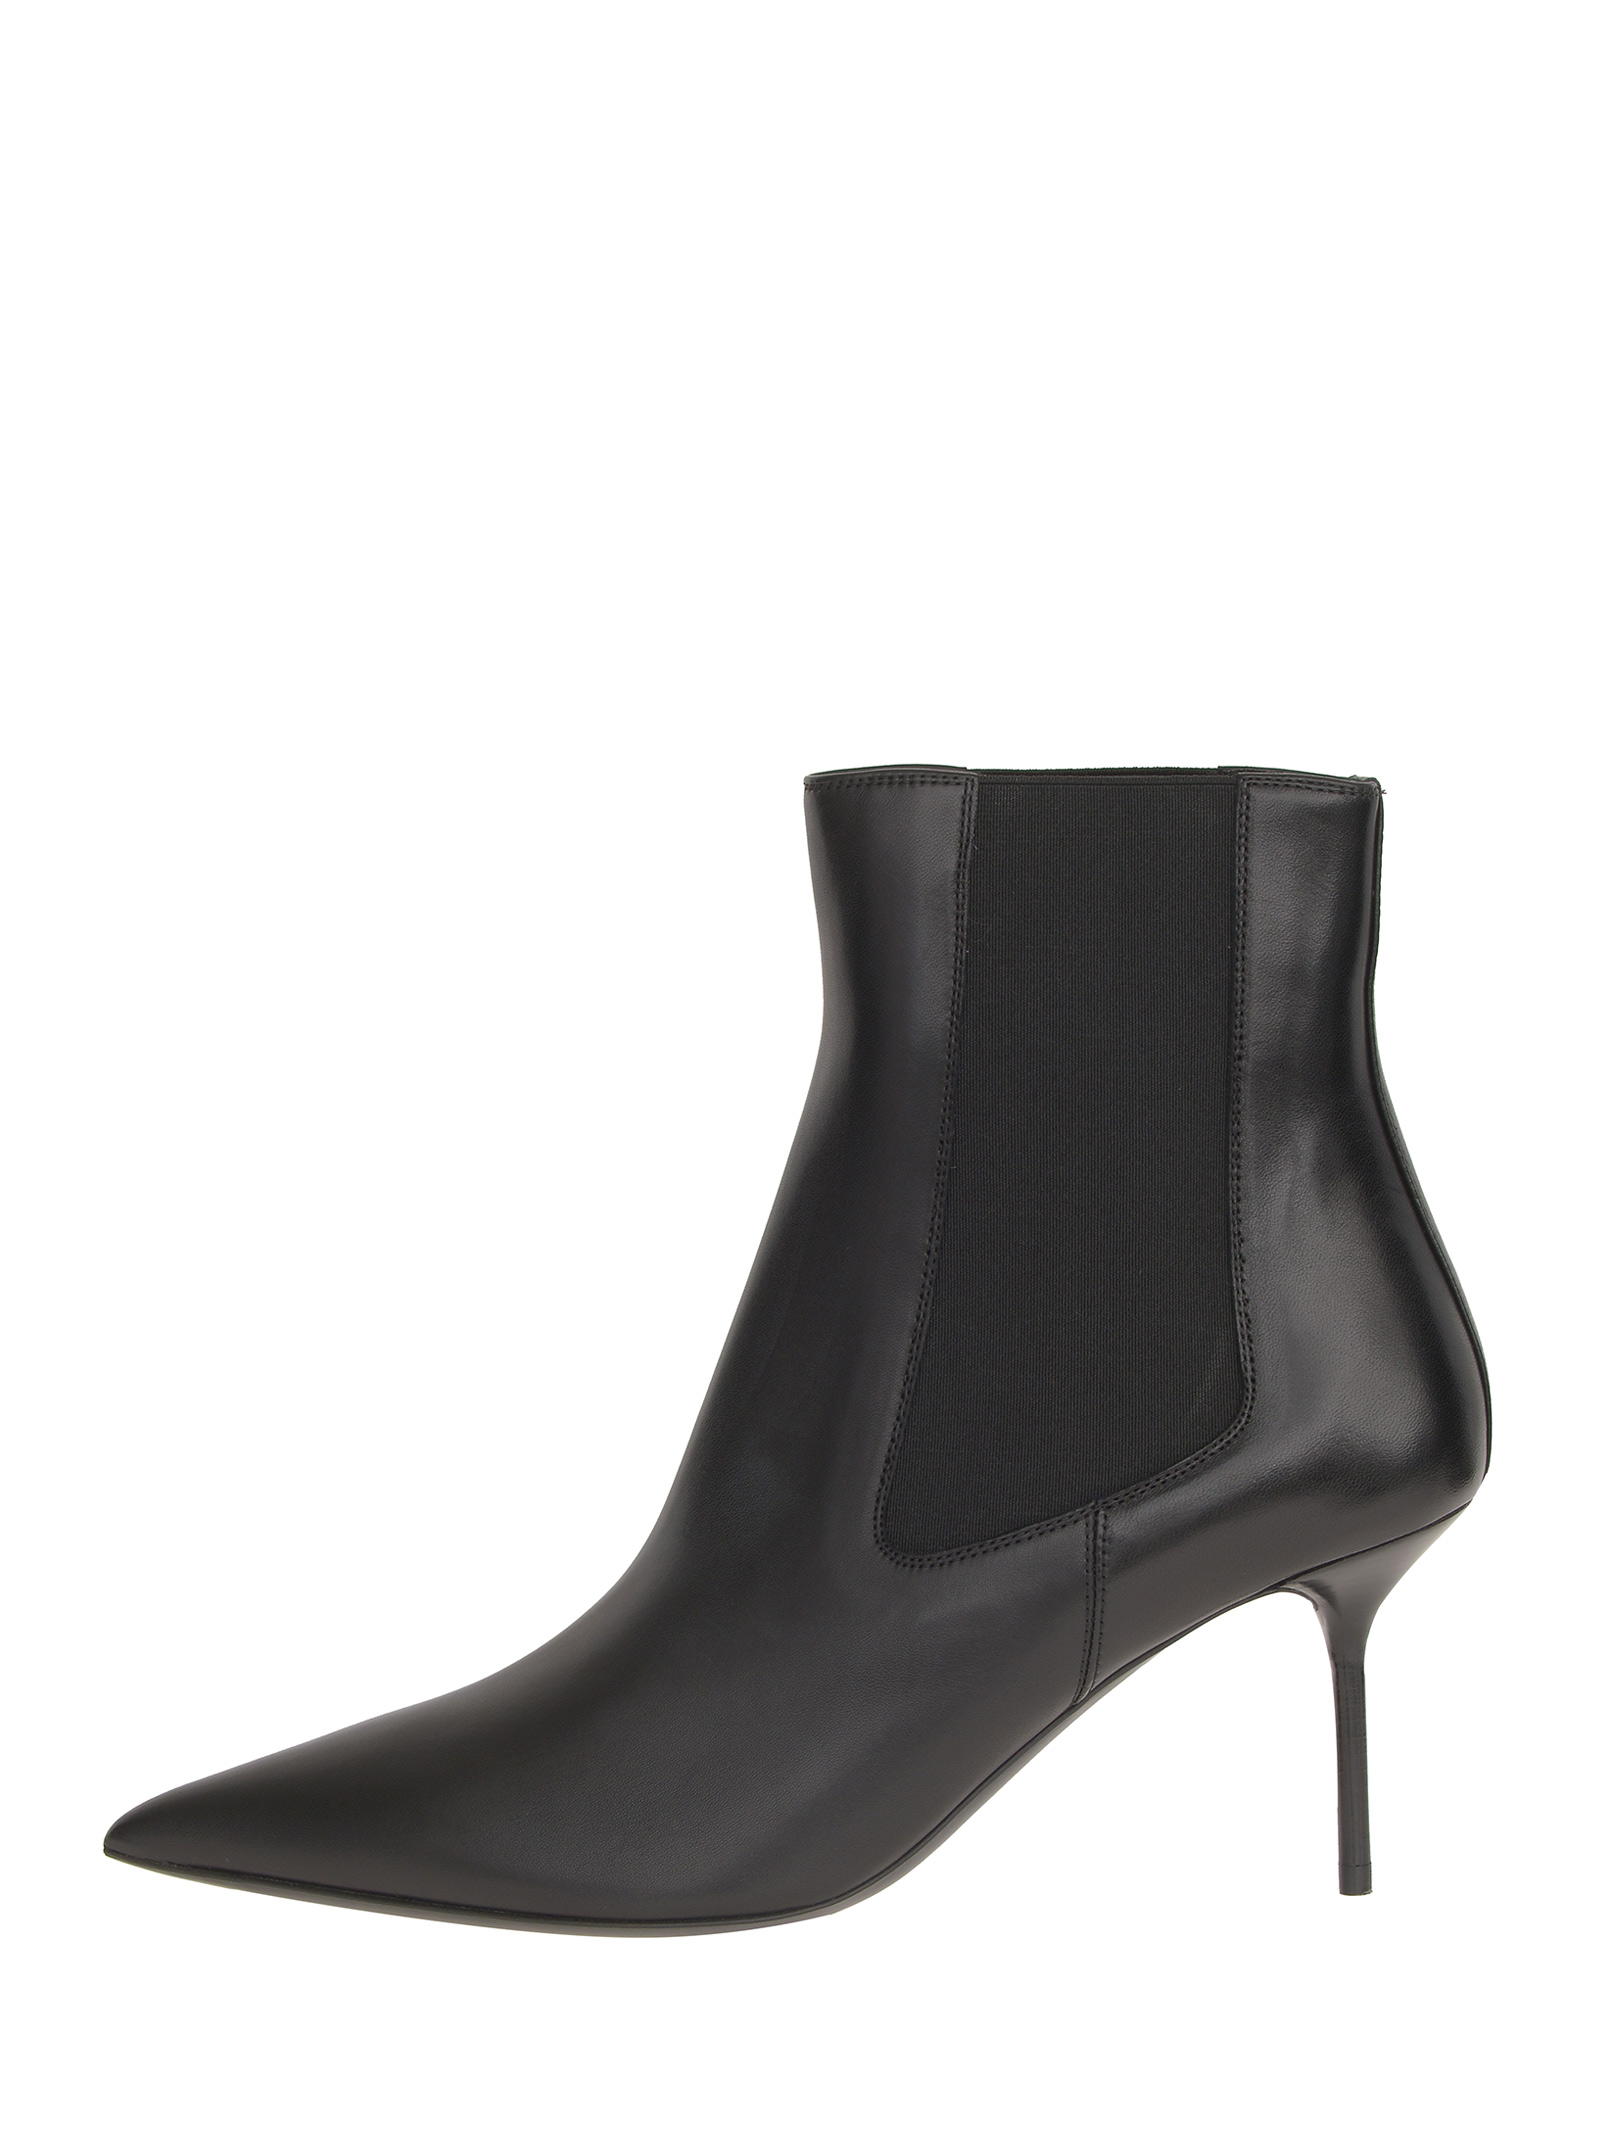 Tom Ford Boots - Tom Ford - Michele